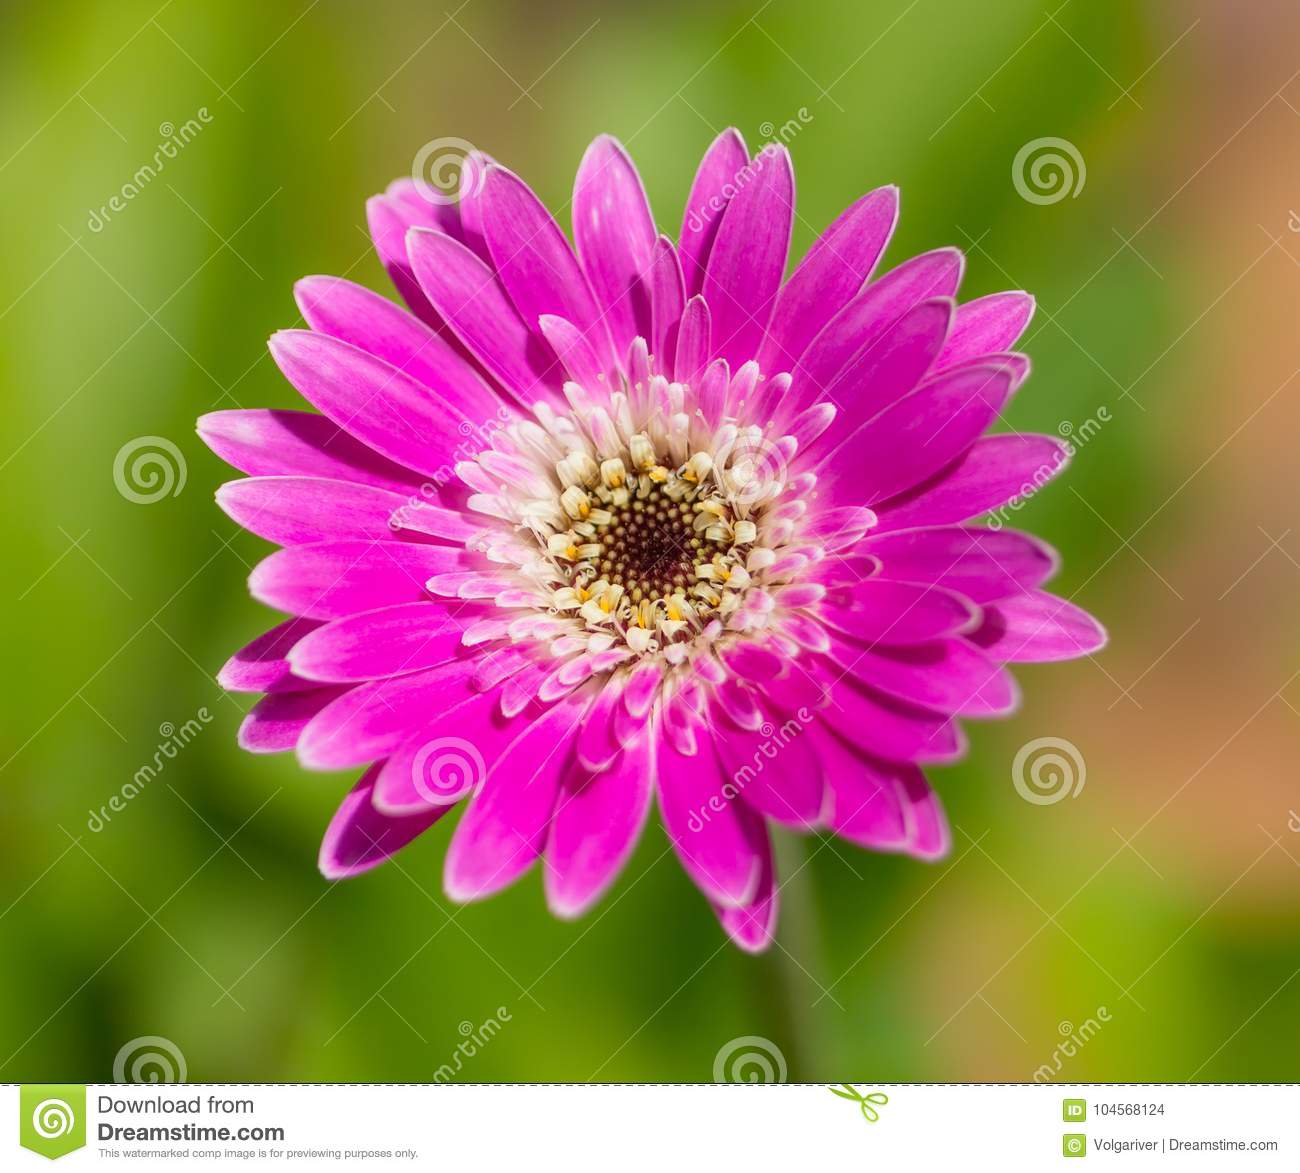 Vibrant Bright Magenta Gerbera Daisy Flower Stock Photo Image Of